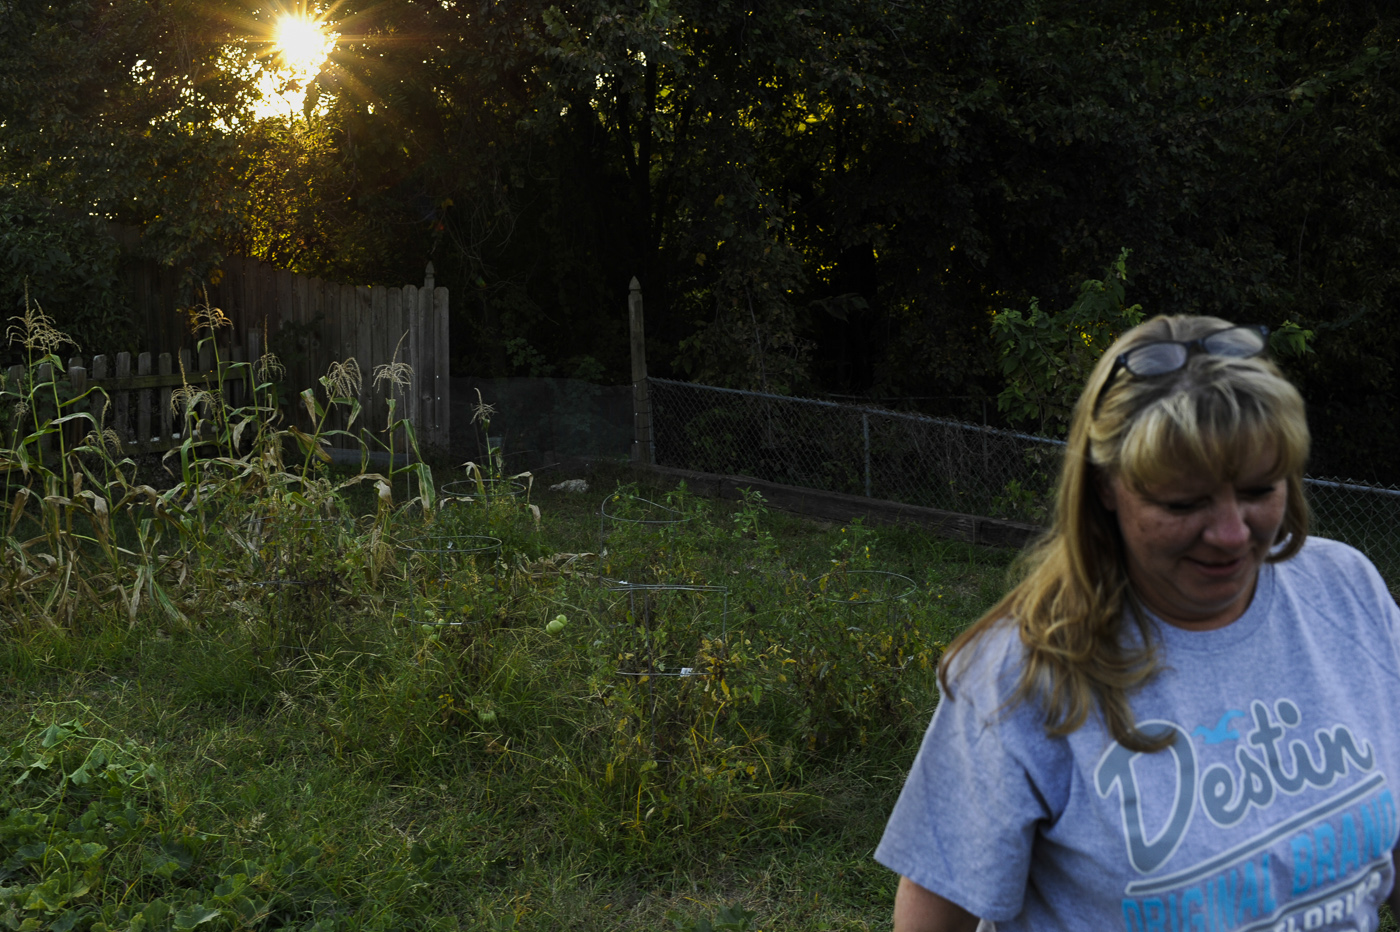 2013's harvest yielded more tomatoes then Detective Nancy Penrod's family could eat. In 2014 however, her garden has gone neglected as the only other Crimes against persons detective in Platte County is out on maternity leave.